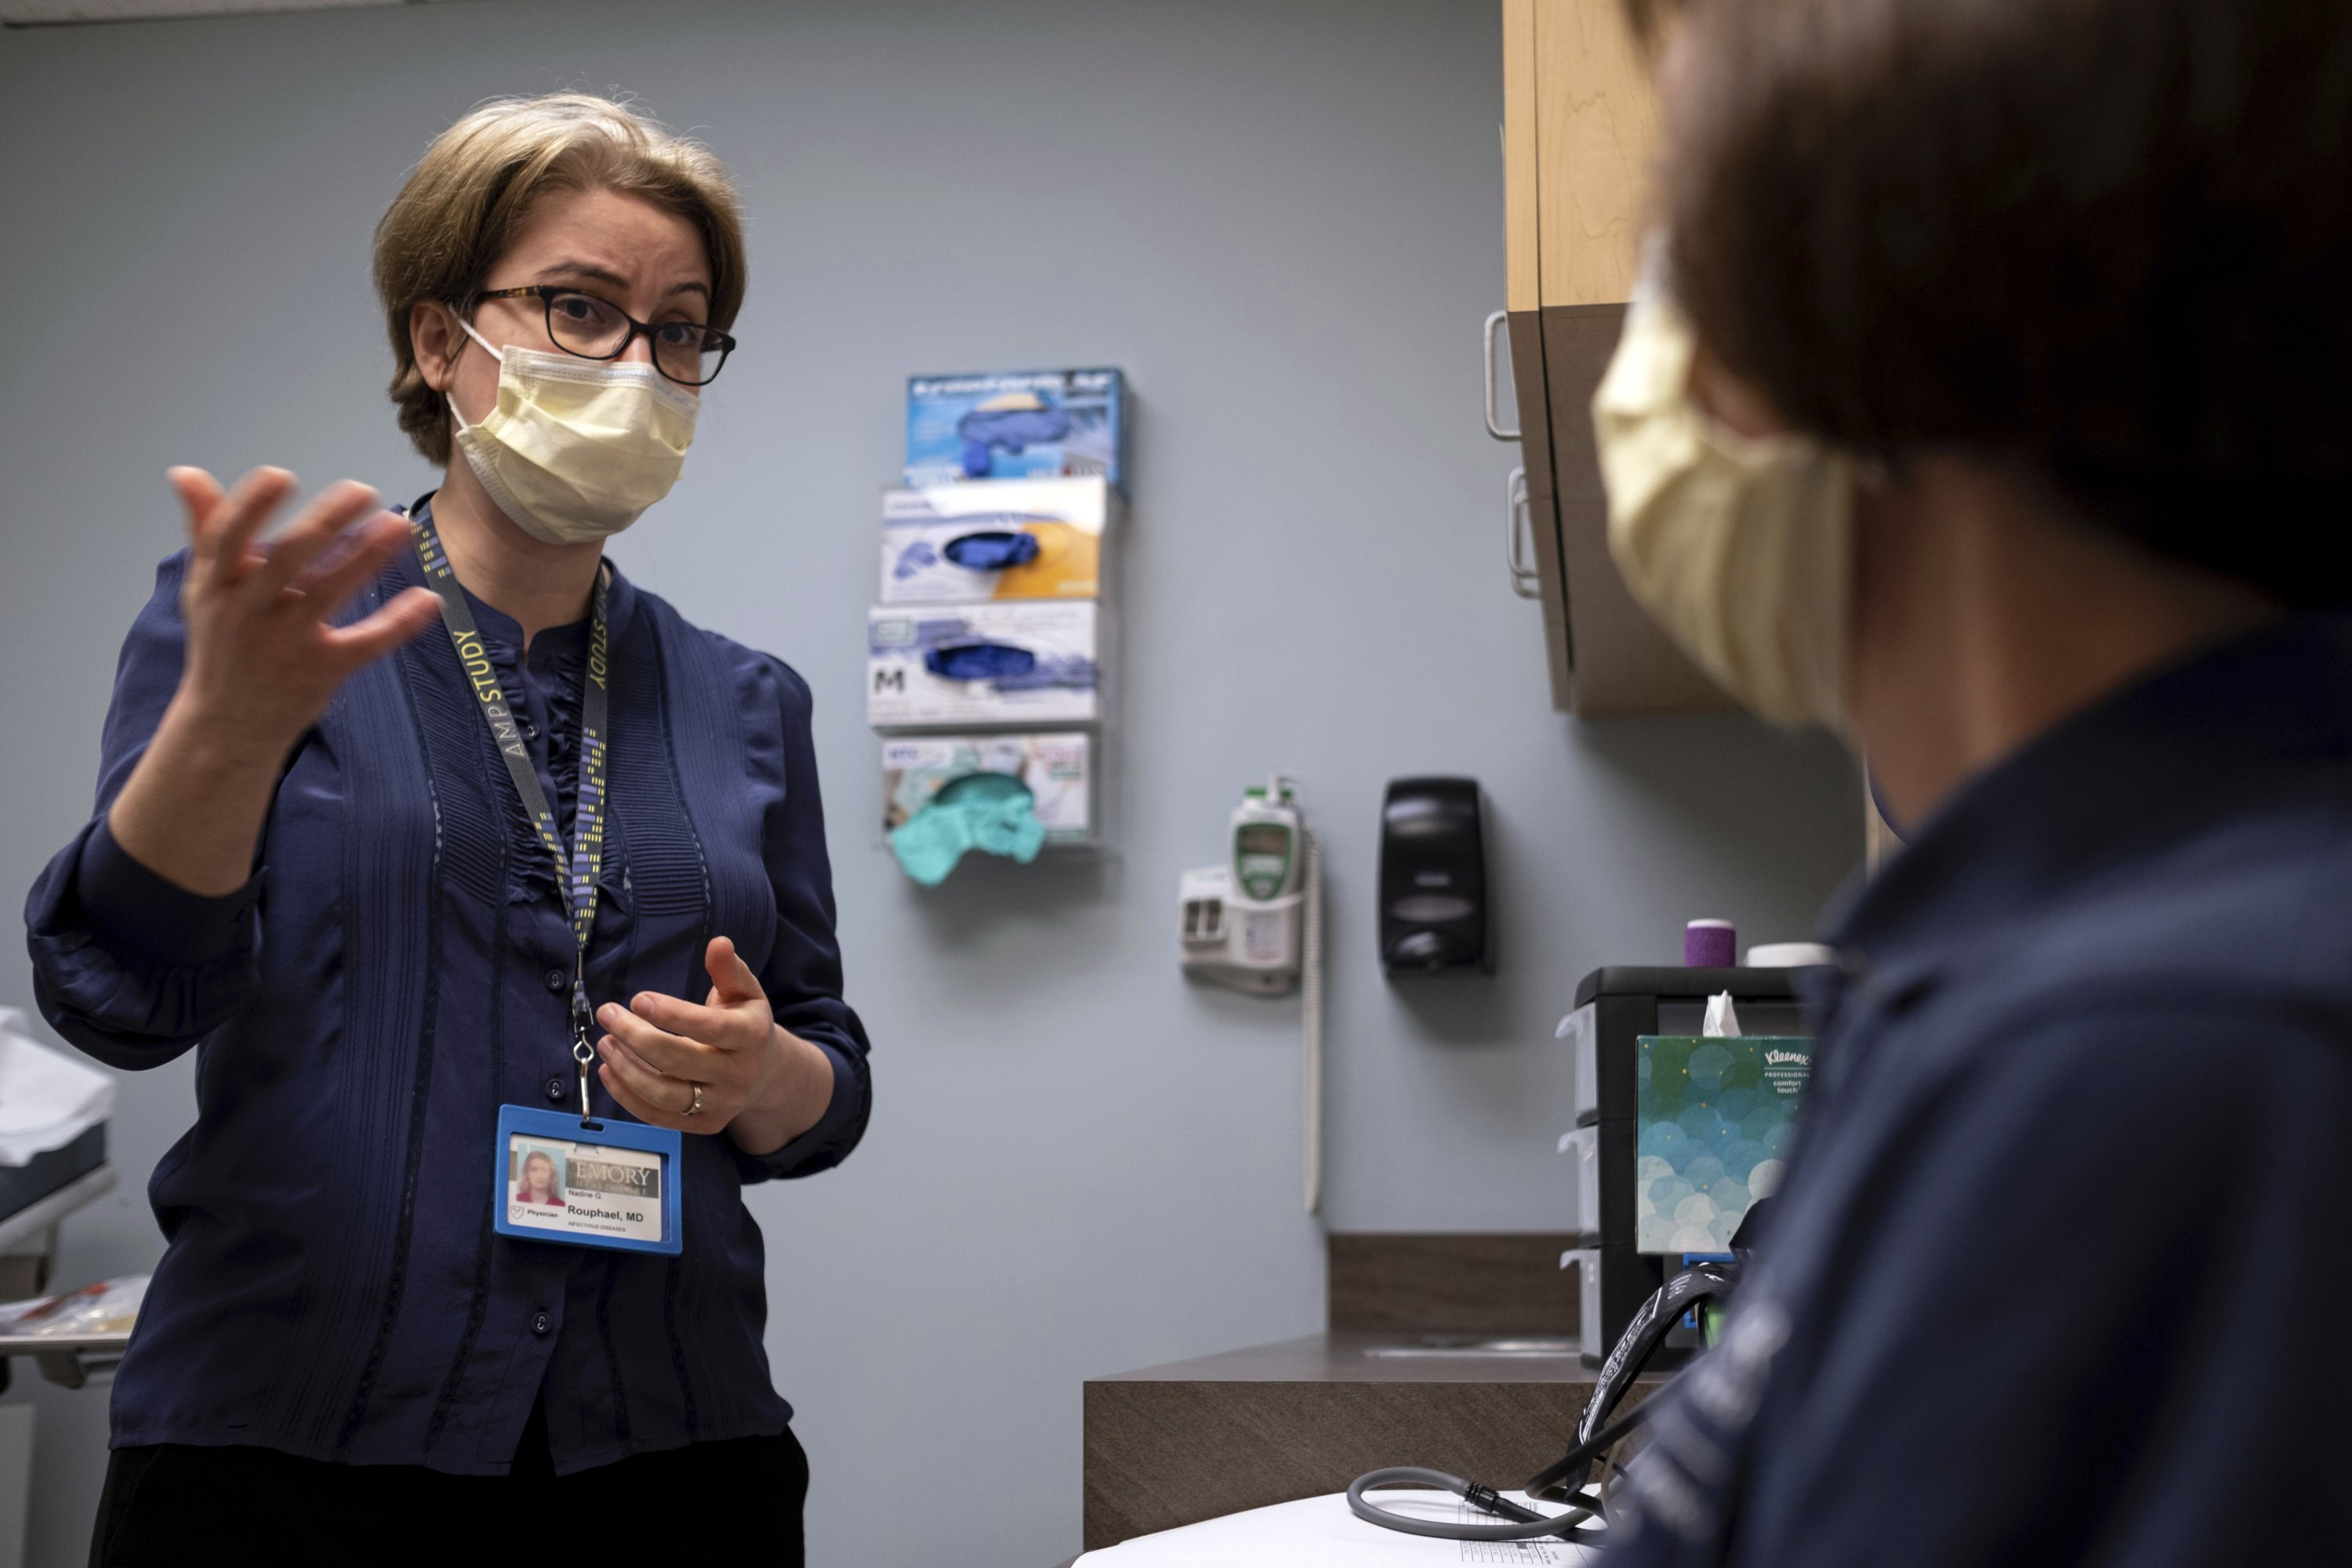 Dr. Nadine Rouphael (L), the principal investigator for the Moderna variant study and executive director of Emory University's Hope Clinic, talks with Carol Kelly, in Decatur, Georgia, the U.S., March 31, 2021. (AP Photo)